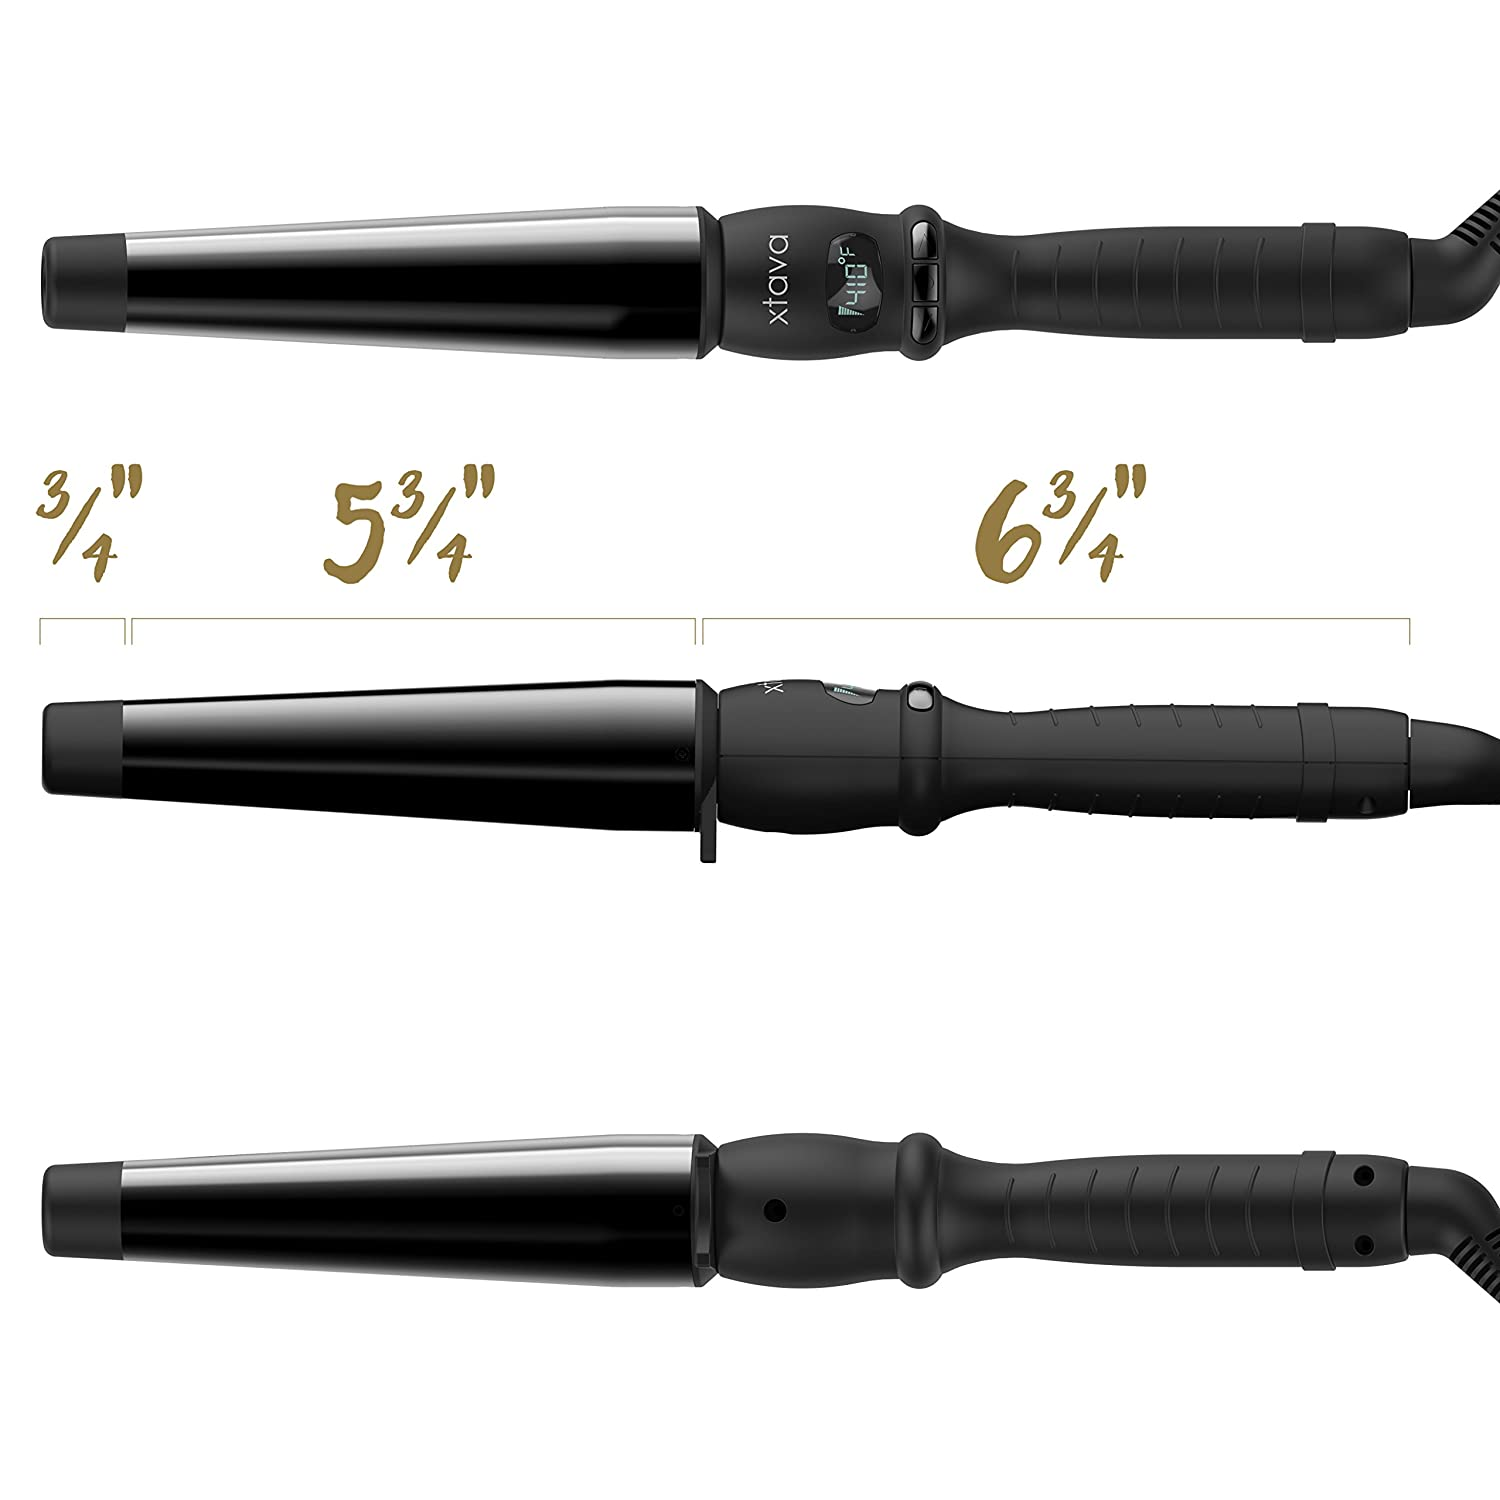 Xtava Twist Curl Curling Wand – 1 to 1.5 Inch Professional Hair Wand with Ceramic Barrel Cool Tip and Auto Shut Off – Dual Voltage Travel Curling Iron for Long Short Hair with Heat Resistant Glove